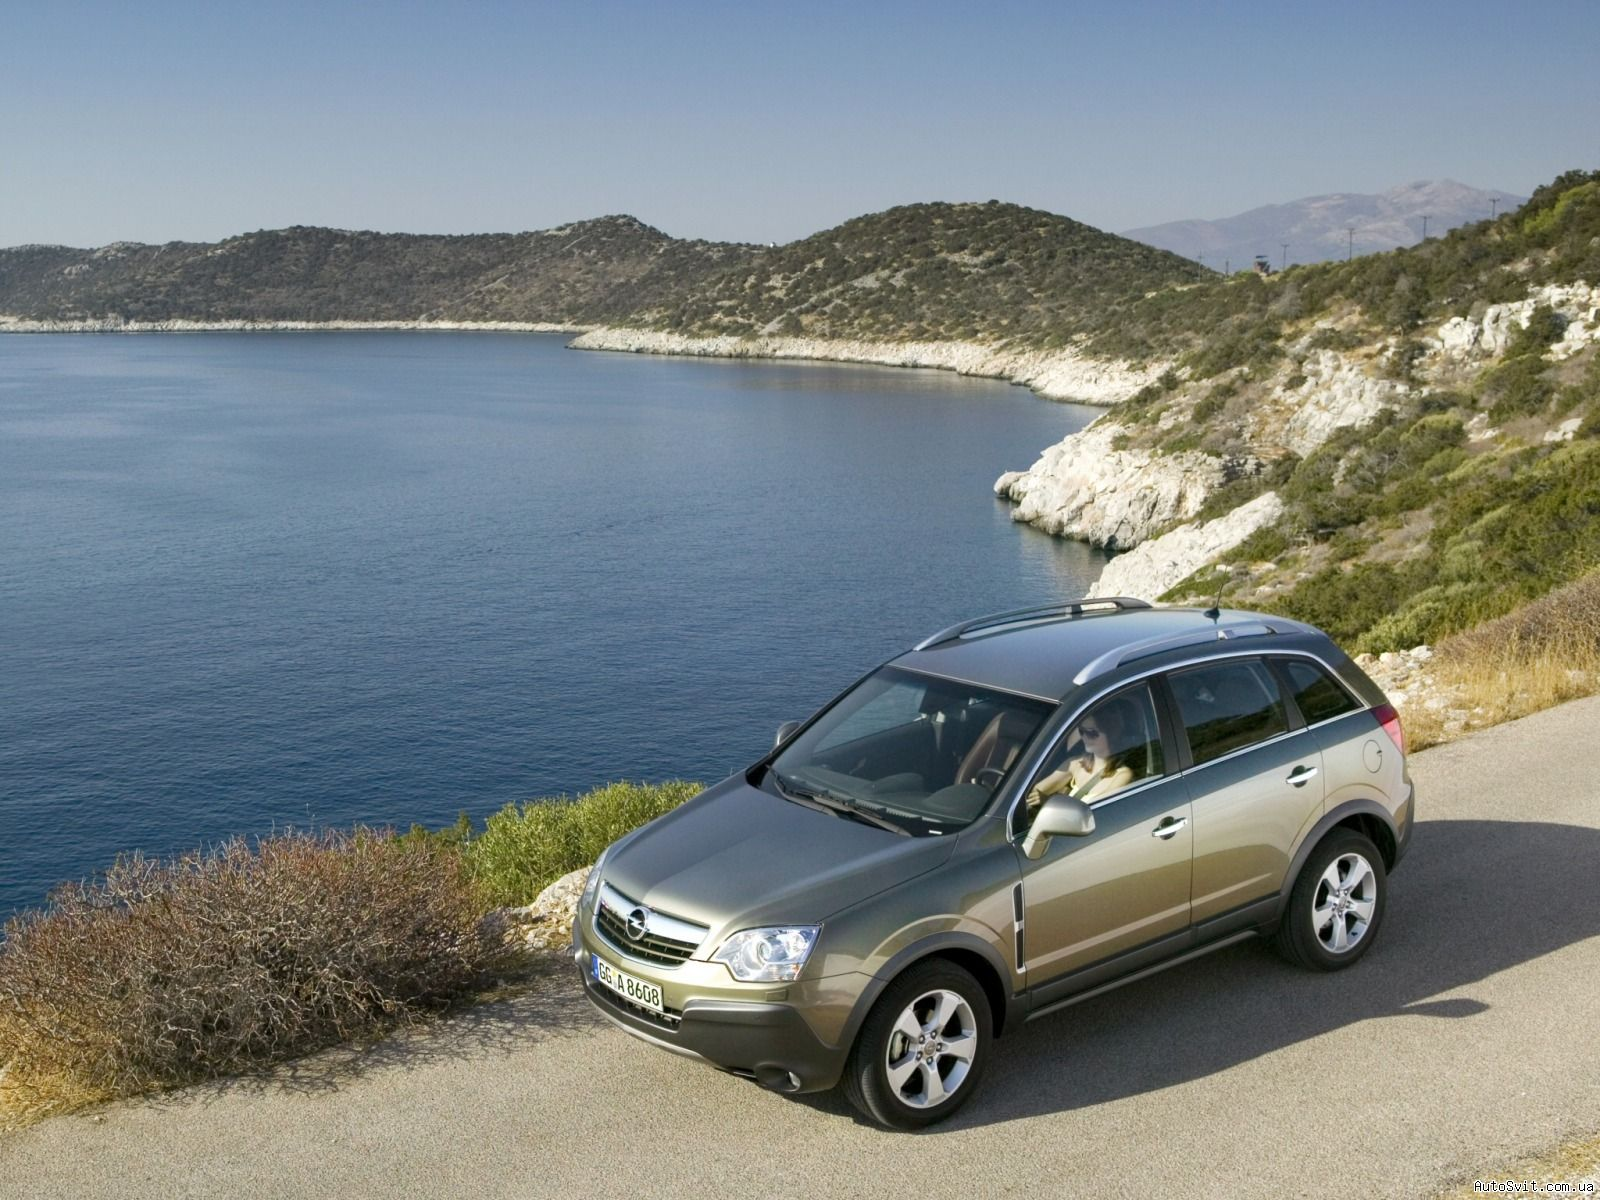 opel antara 2006 review amazing pictures and images look at the car. Black Bedroom Furniture Sets. Home Design Ideas